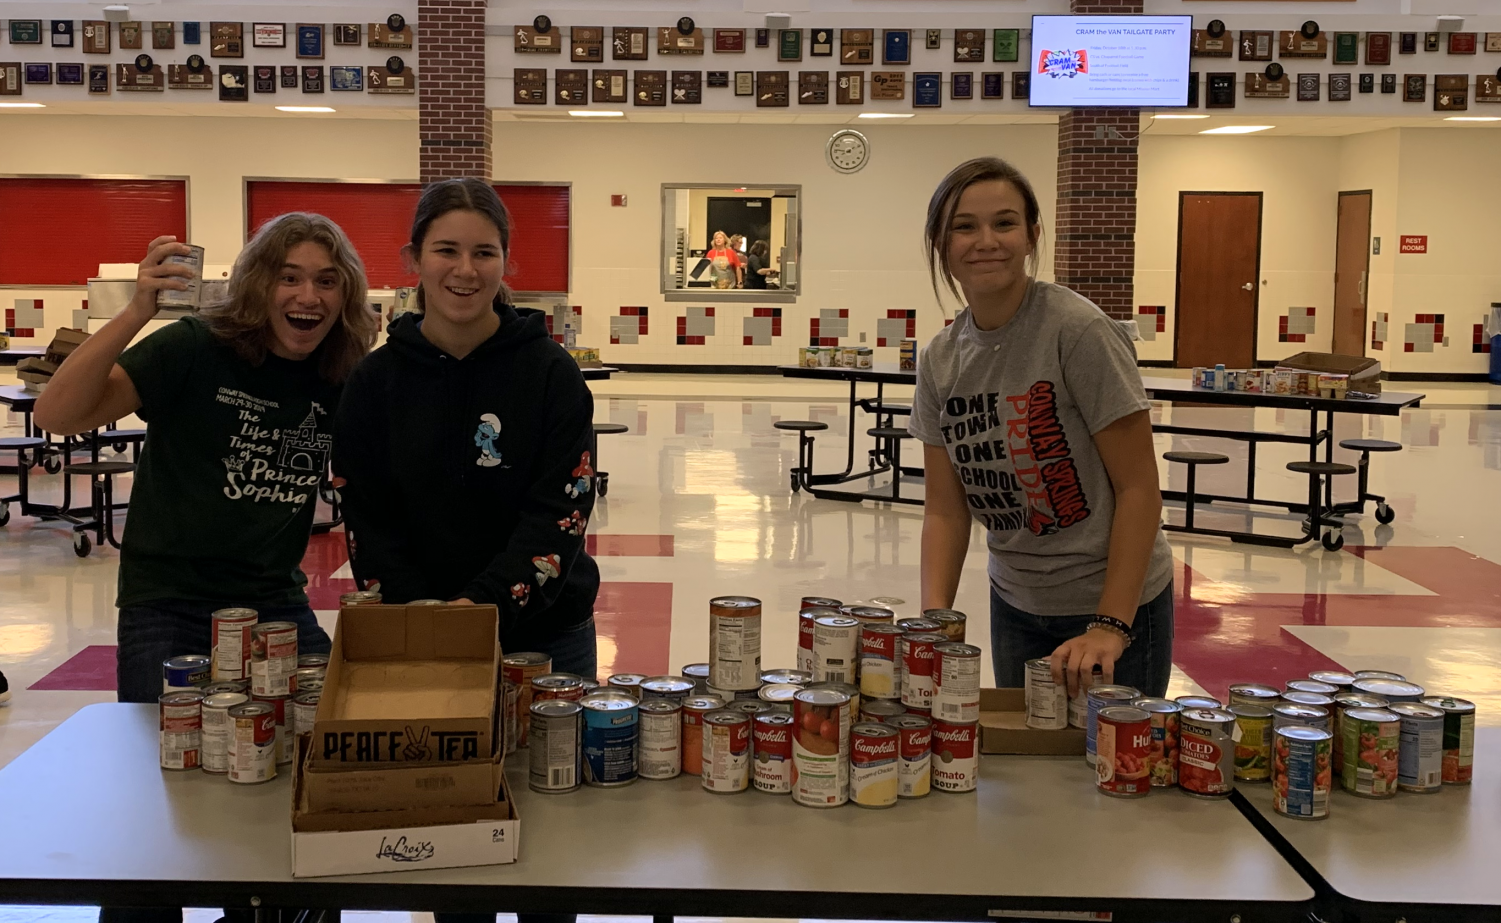 During the Cardinal Care Food Drive, junior Owen Balman and sophomores Averie Stull and Abby Botkin help separate the cans into boxes. Student Council volunteered to co-host the food drive to help donate to families in need.